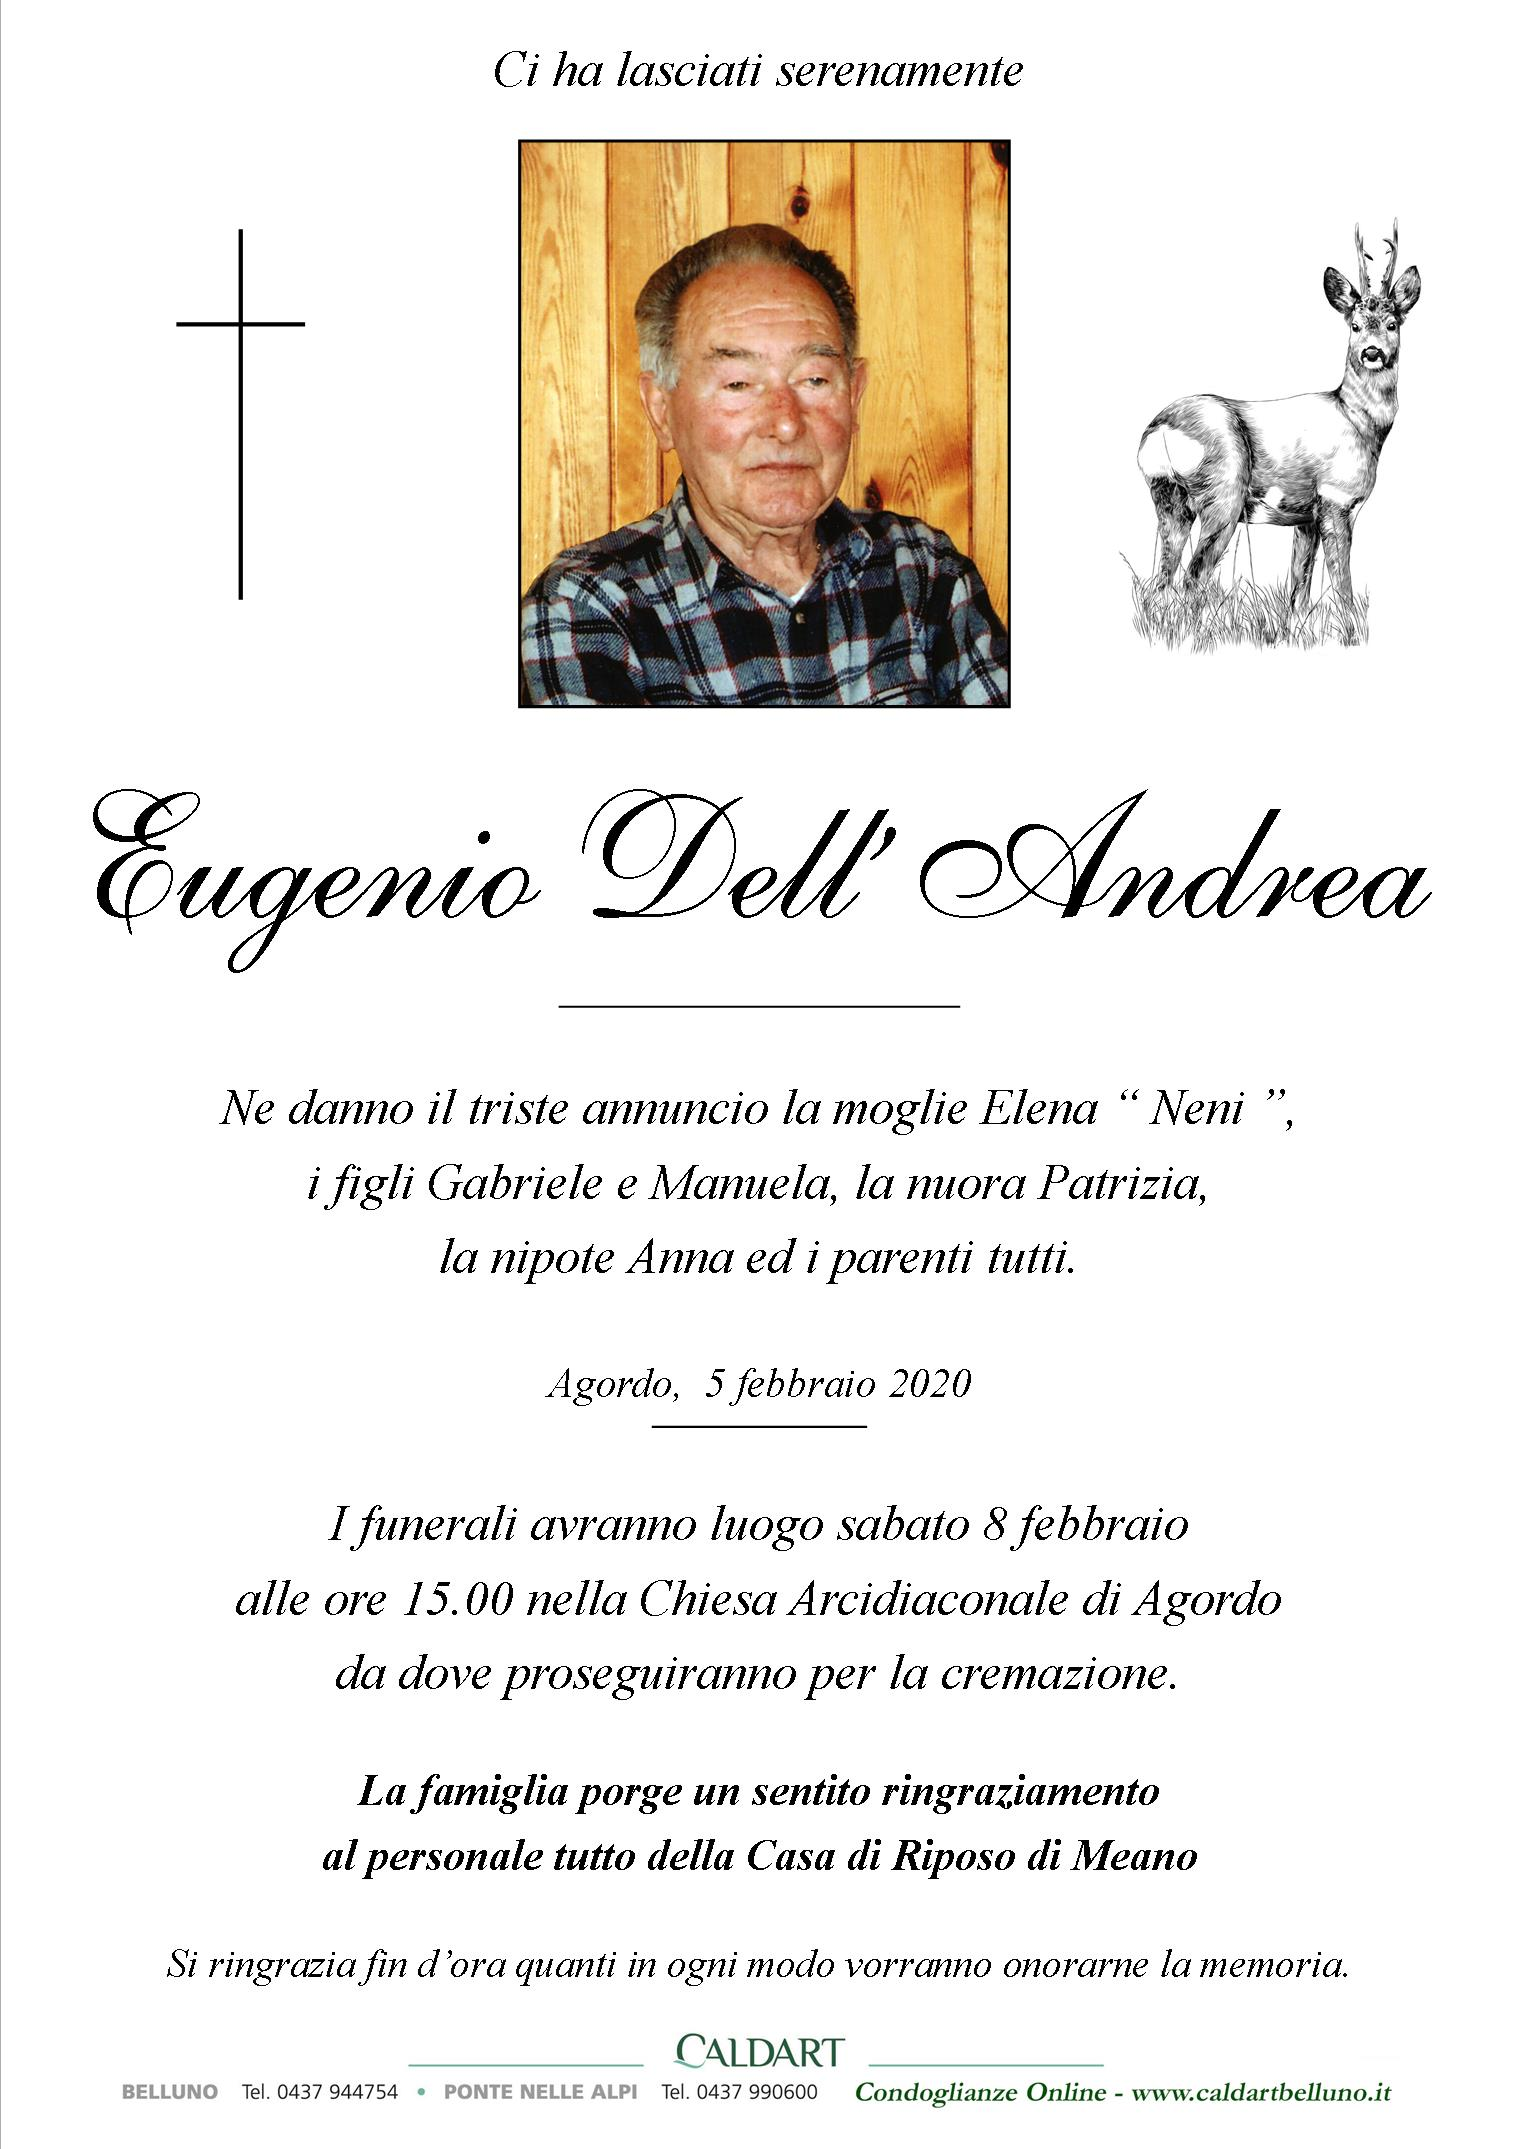 Dell'Andrea Eugenio